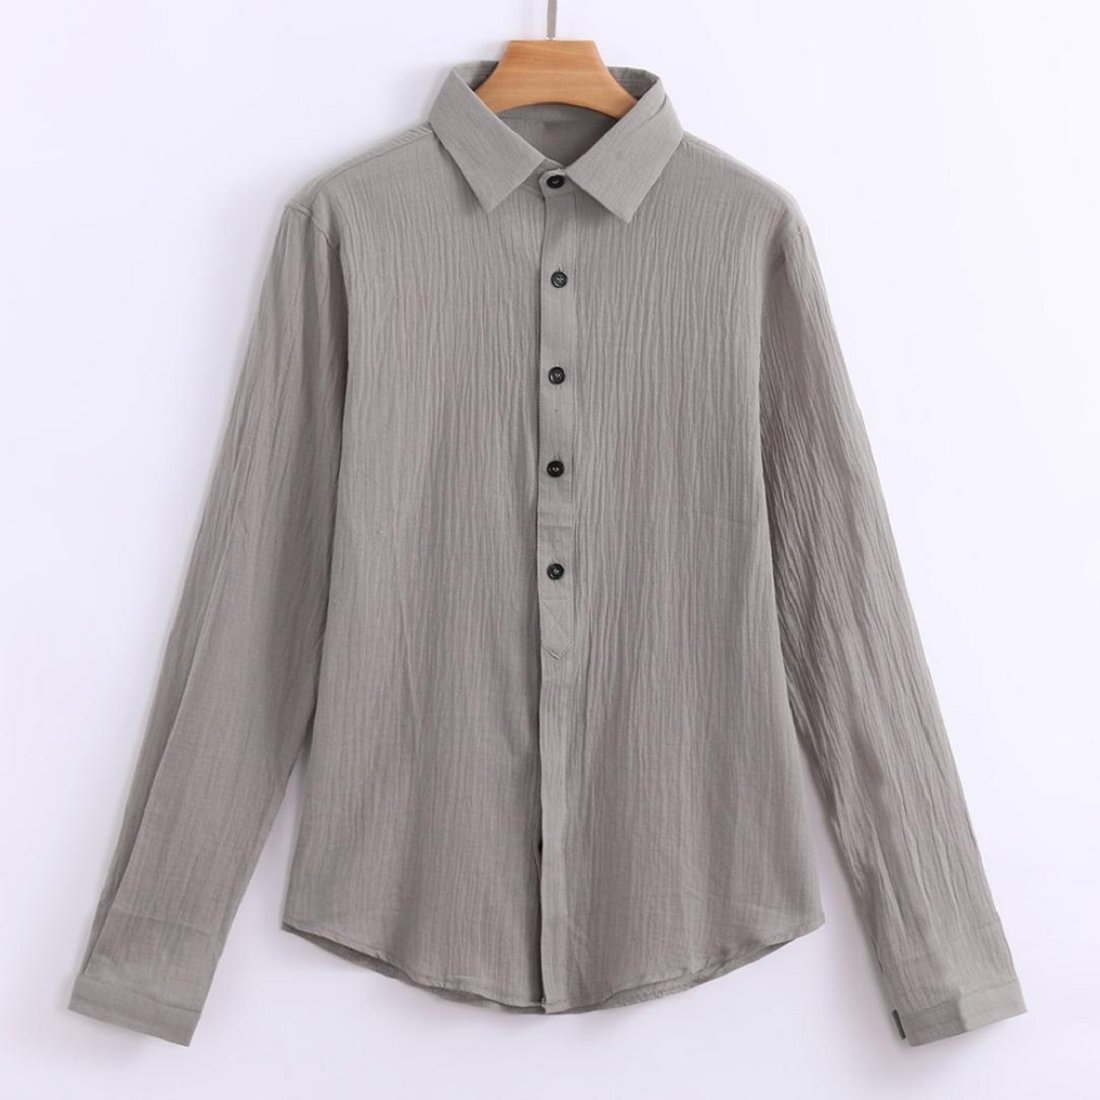 Mens Shirts Long Sleeve Henley Shirt Cotton Solid Casual Loose Fit Tops Blouse